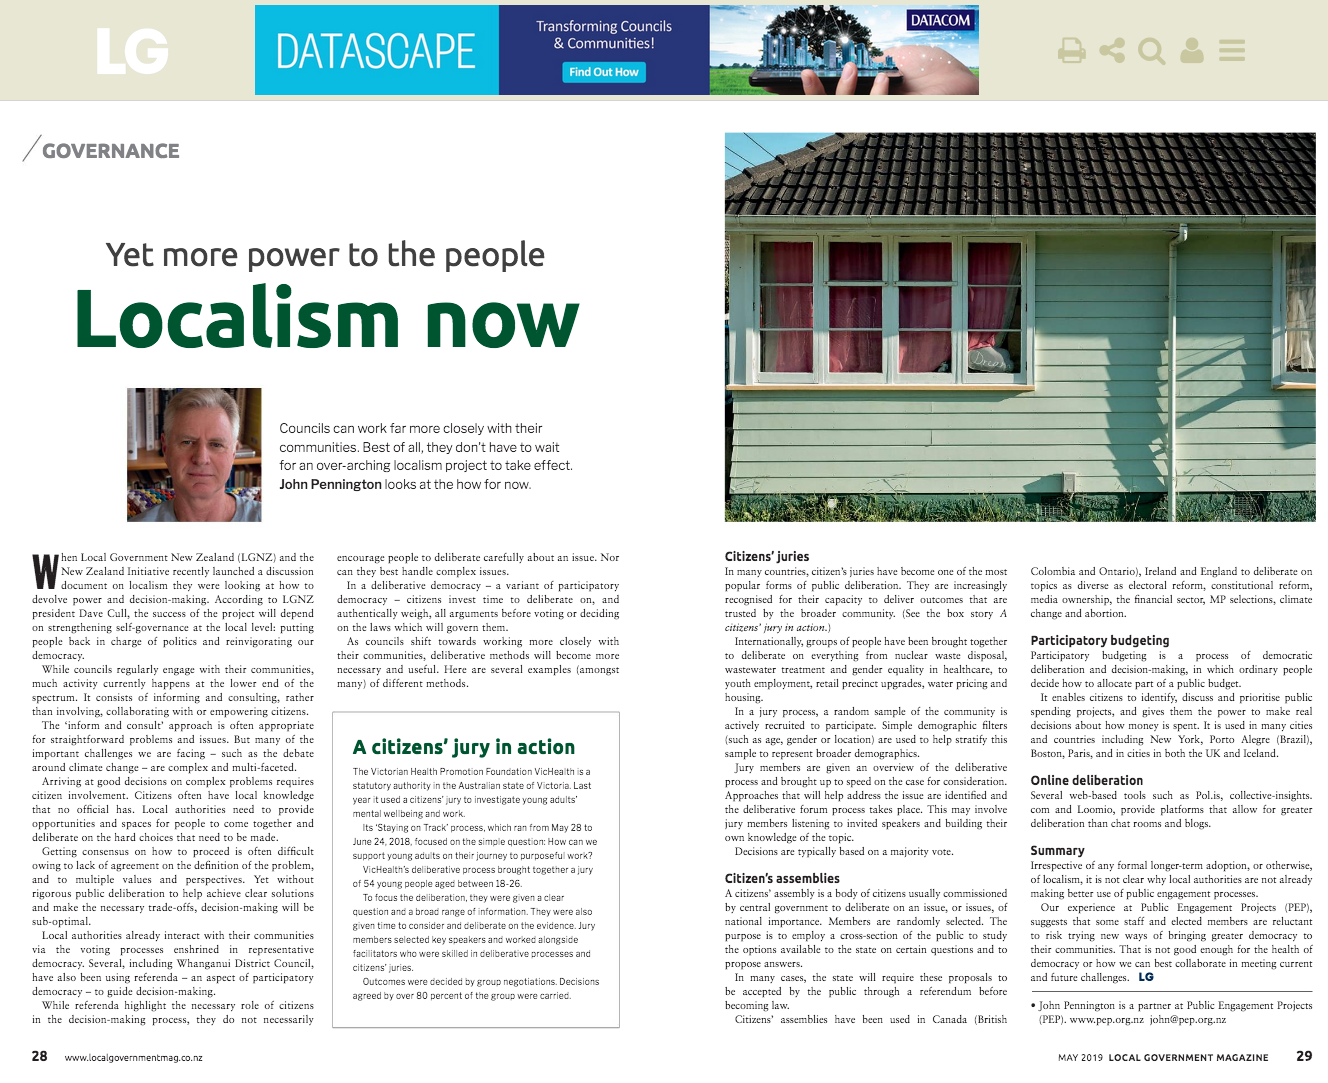 Yet more power to the people: Localism now, The NZ Local Government Magazine, Vol. 56, May 2019